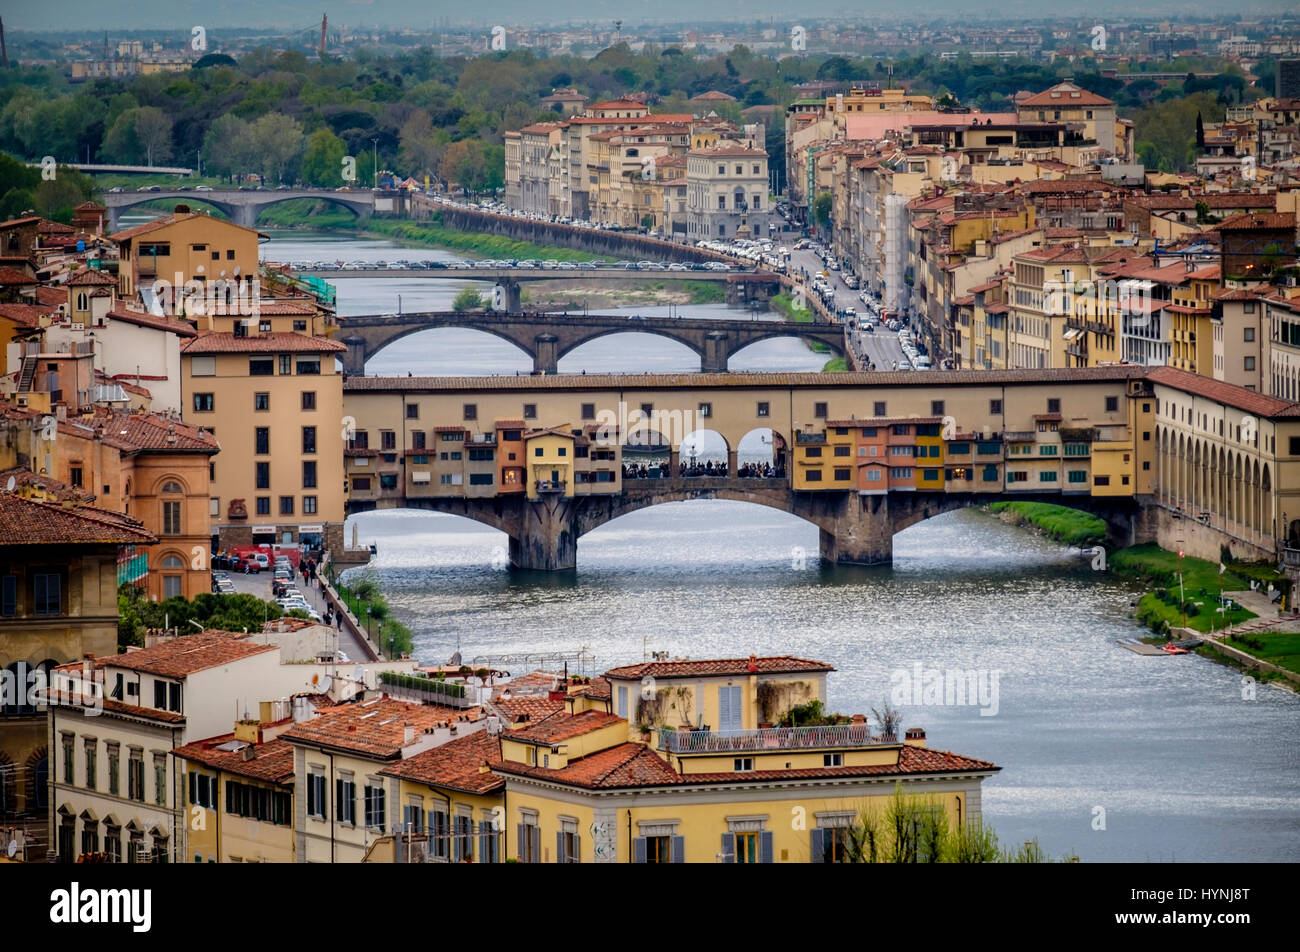 FLORENCE, ITALY - CIRCA MAY 2015:  Ponte Vecchio and Arno river in Florence, Italy. - Stock Image